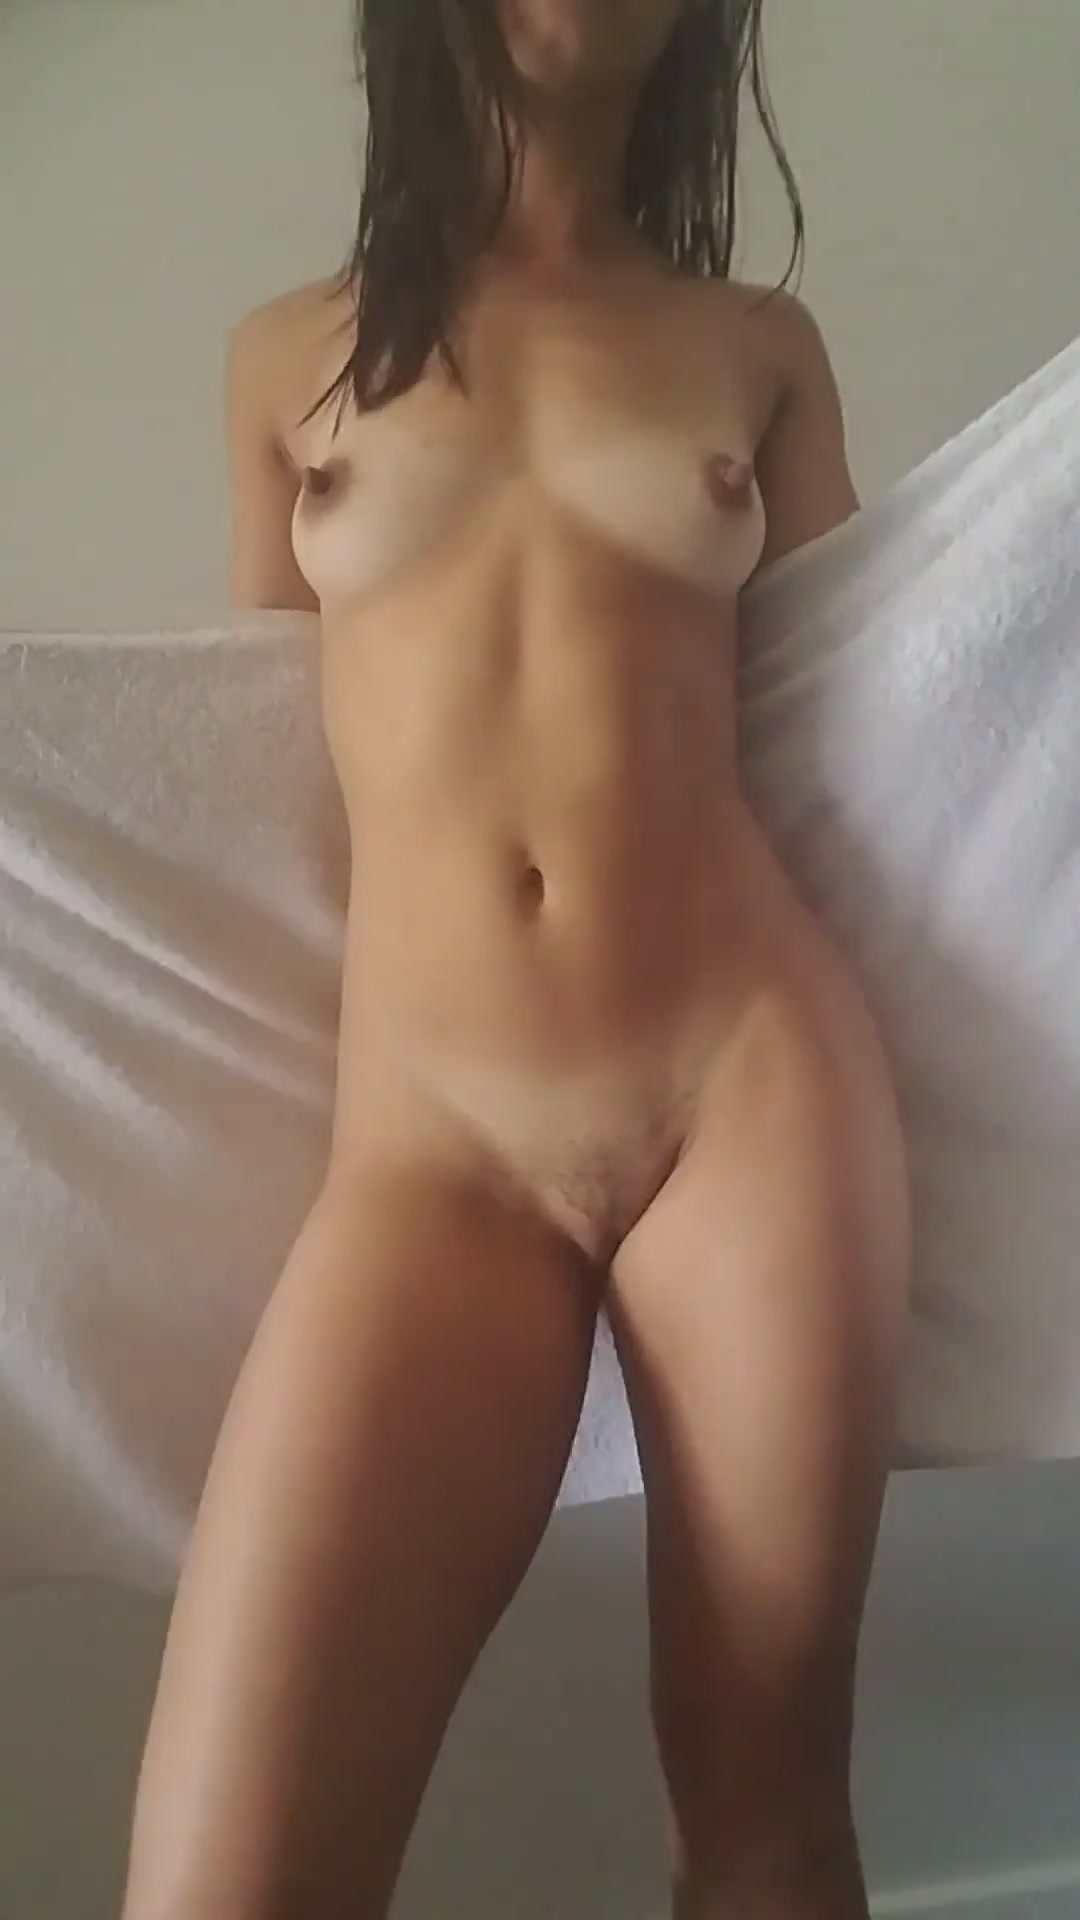 Showing off my sexy ass body before I teach some morons - Real Naked Girls | Real Naked Girls